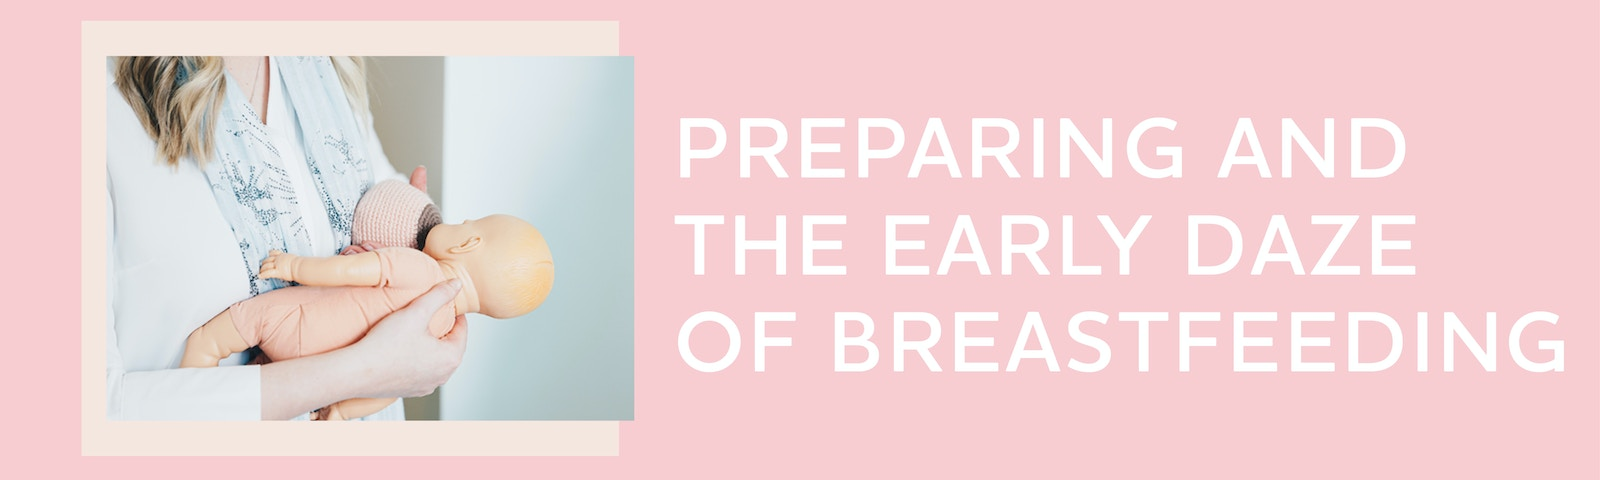 Image of a baby being breastfed with text that reads Preparing for breastfeeding and the early DAZE of breastfeeding